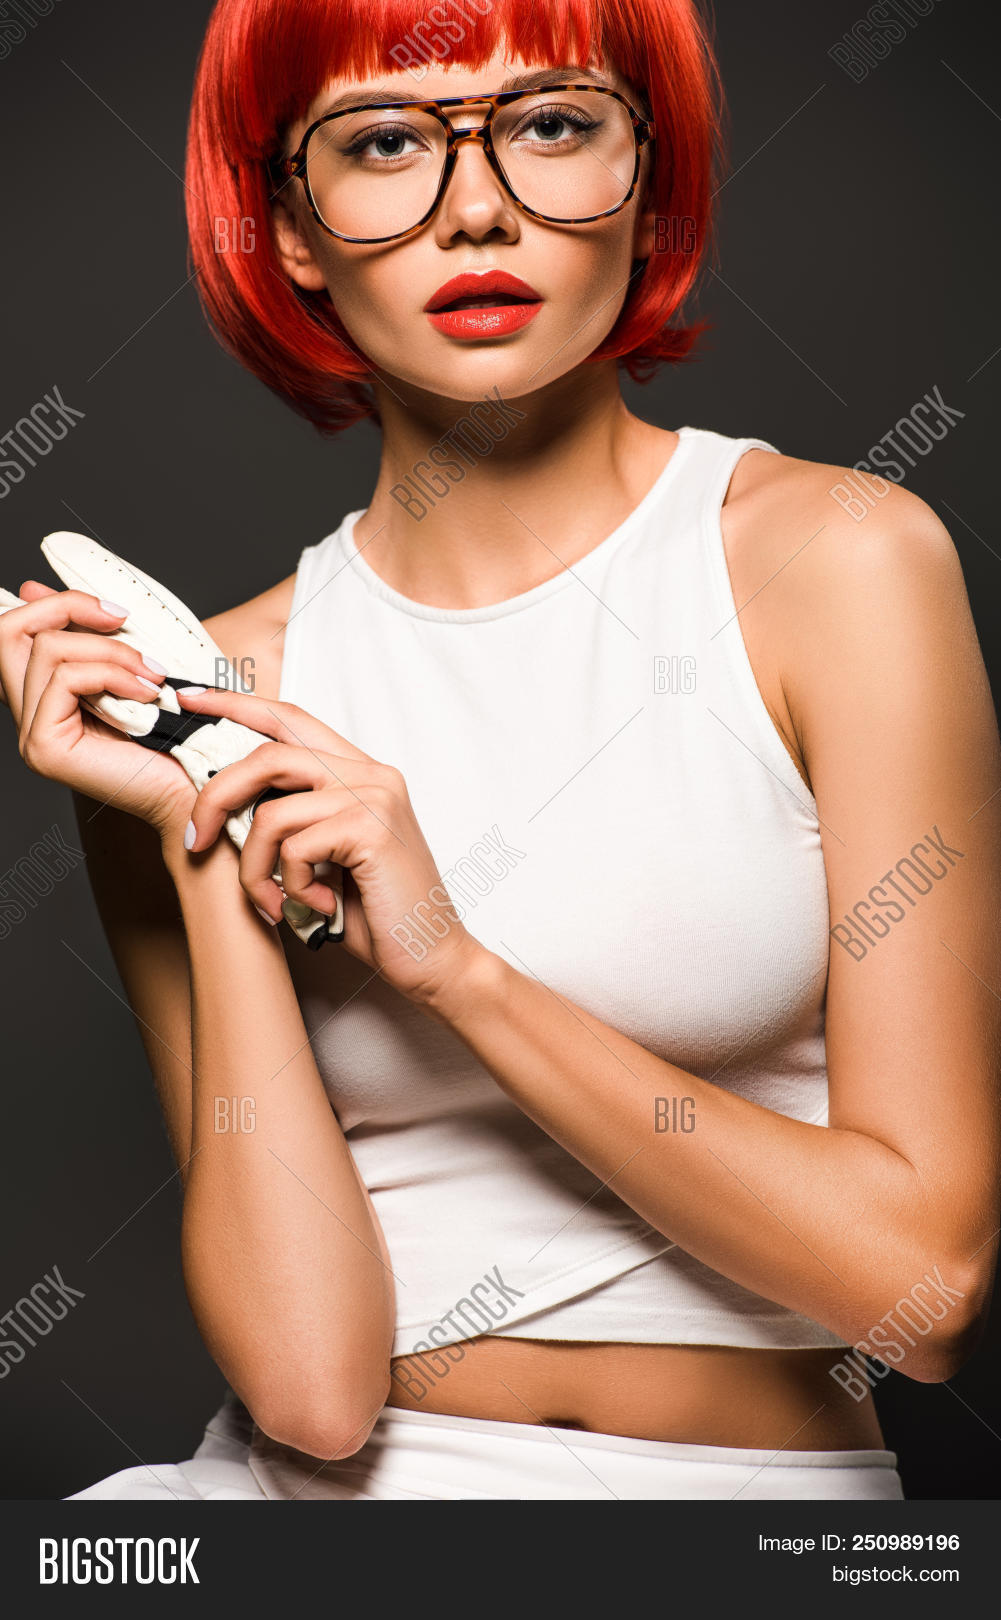 866071e629 Beautiful Young Woman With Red Bob Cut In Golf Glove And Stylish Eyeglasses  Looking At Camera